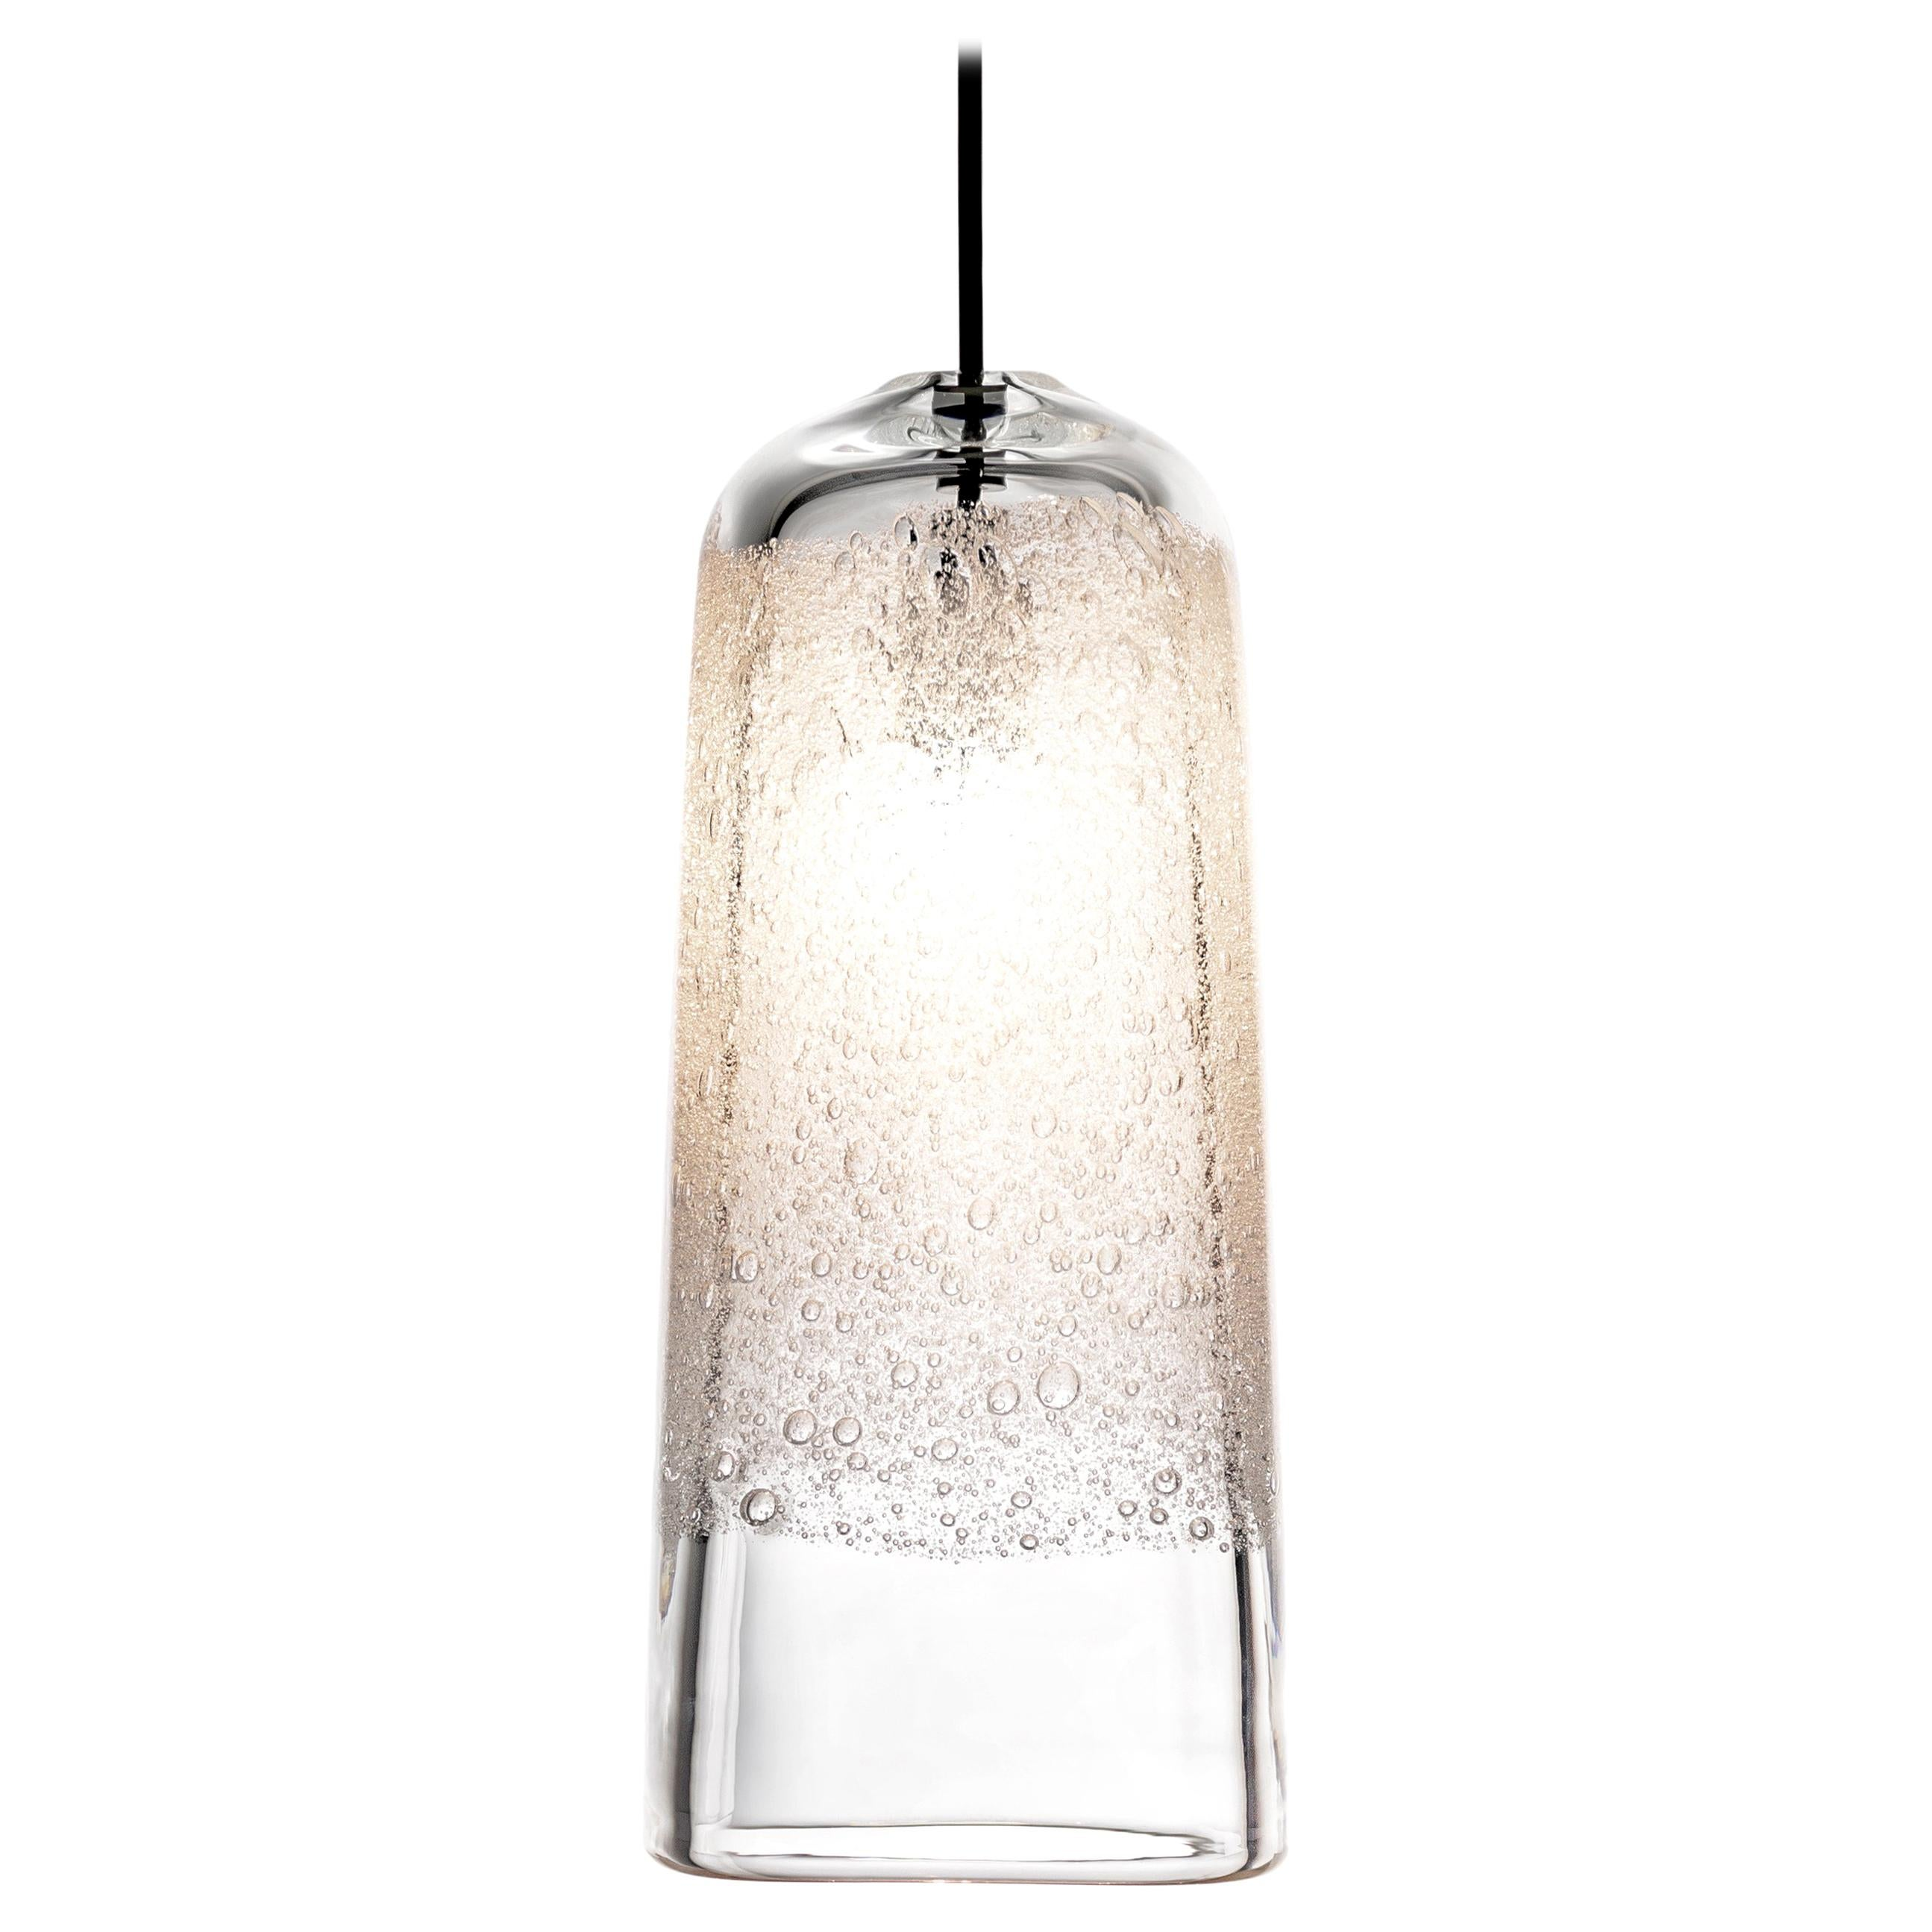 Small Square Pendant Light, Hand Blown Clear Glass with Bubbles - Made to Order